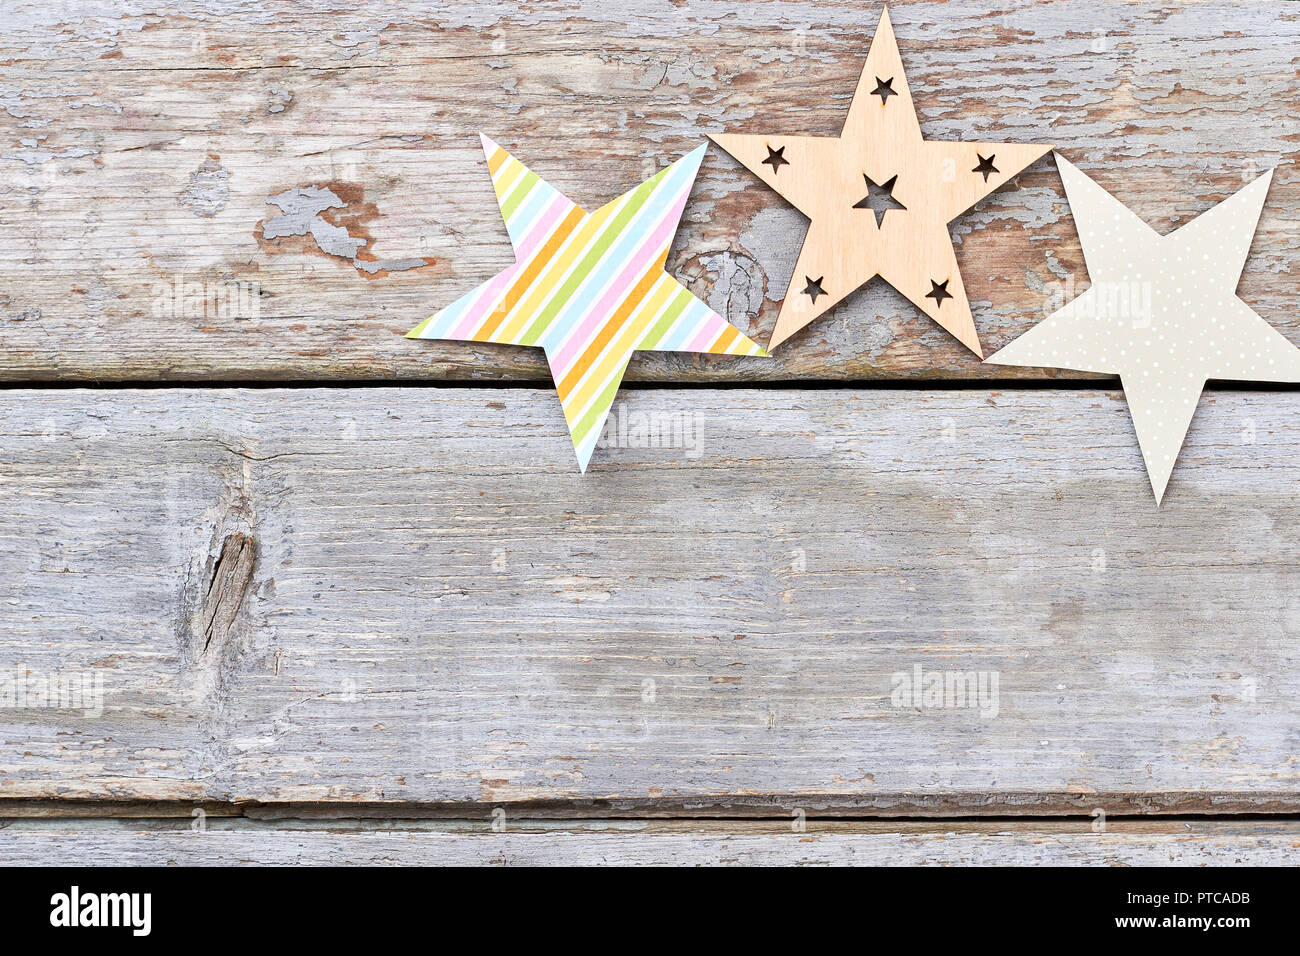 handmade christmas decorations stars paper and wooden cut out decorative christmas stars on old wooden background copy space